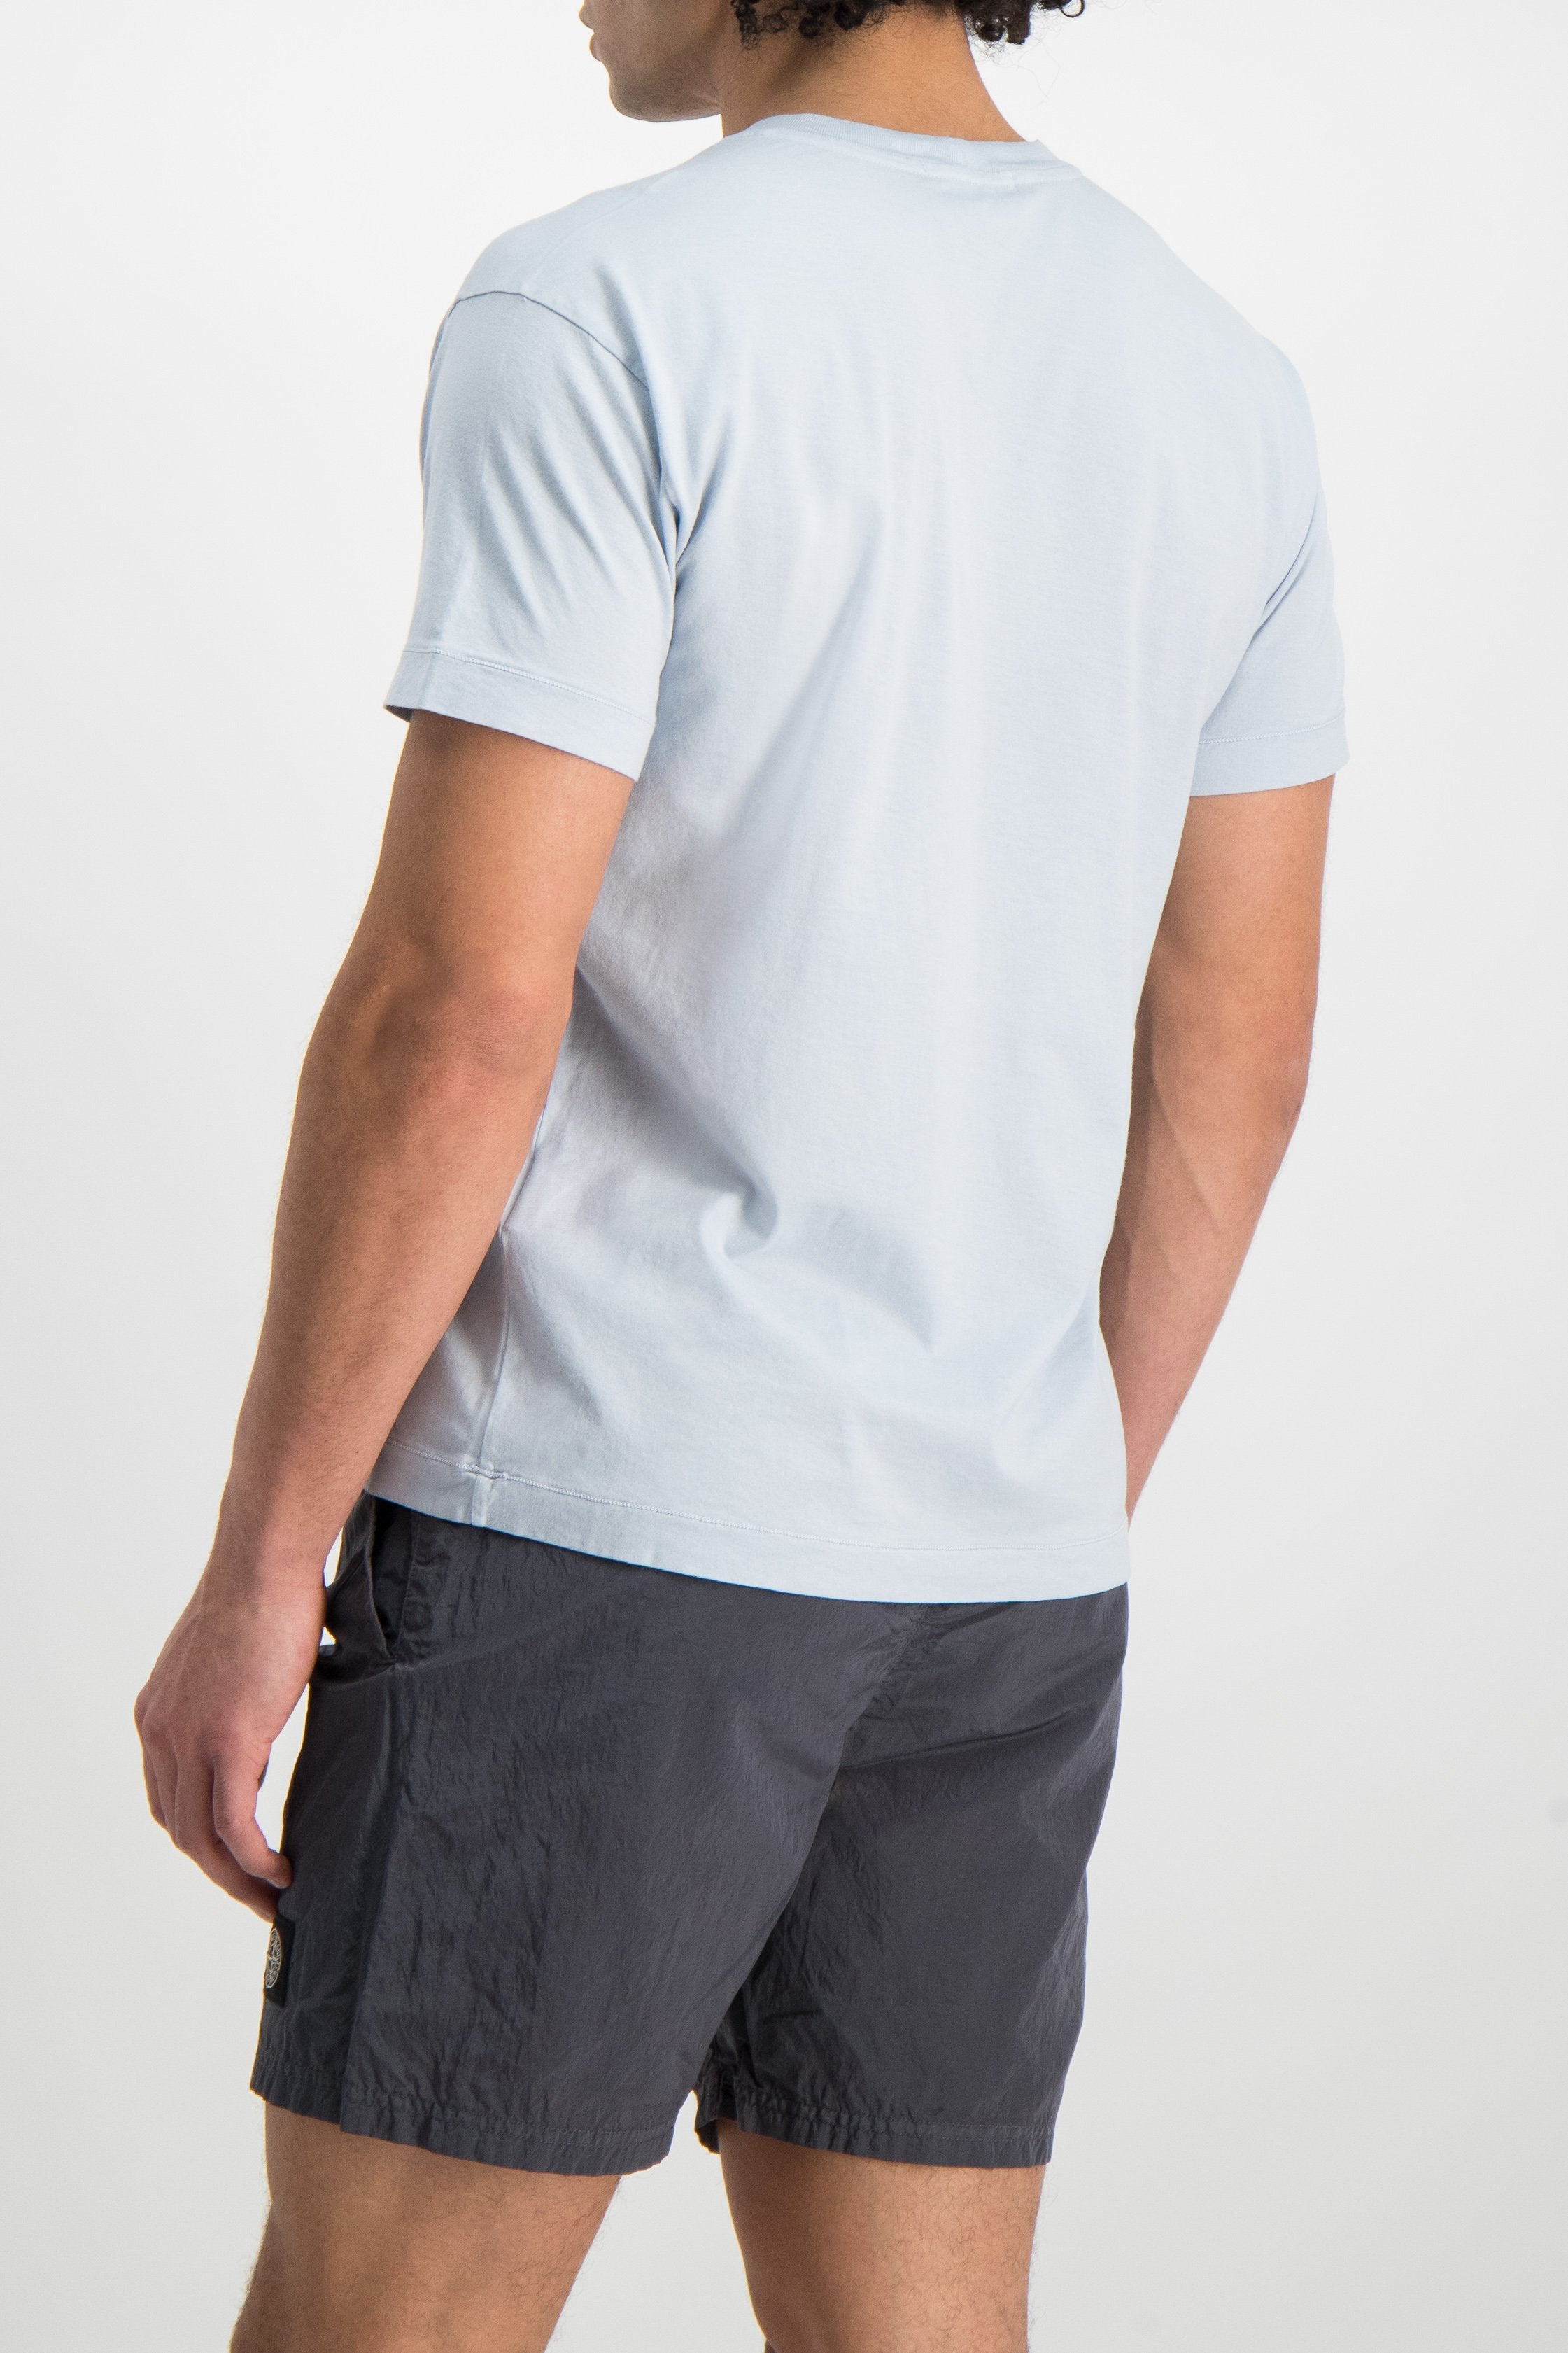 Back Crop Image Of Model Wearing Stone Island T-Shirt Sky Blue